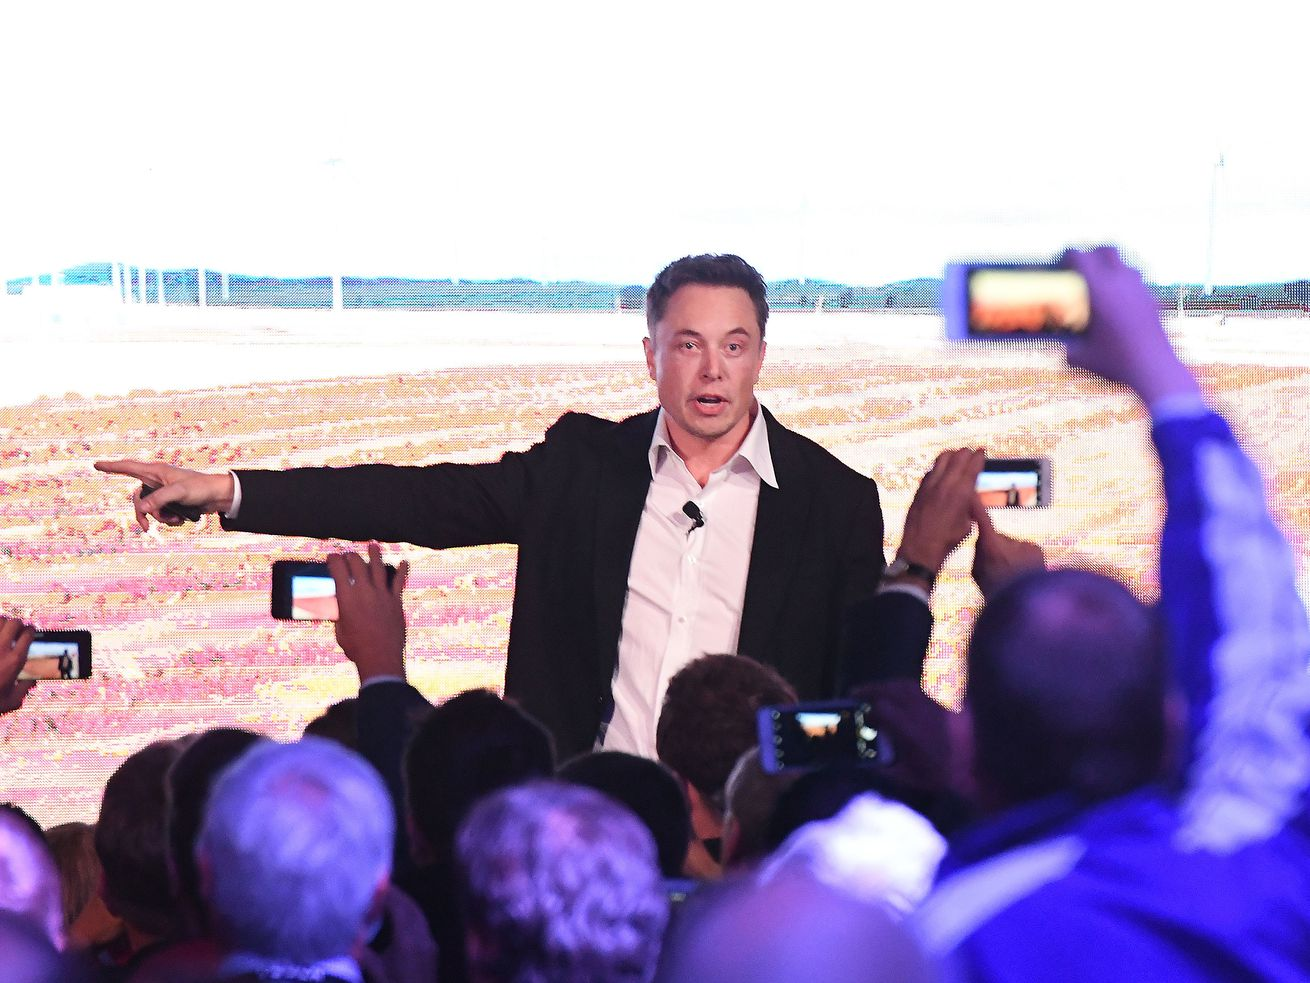 Elon Musk at an event in Adelaide, Australia in 2017.